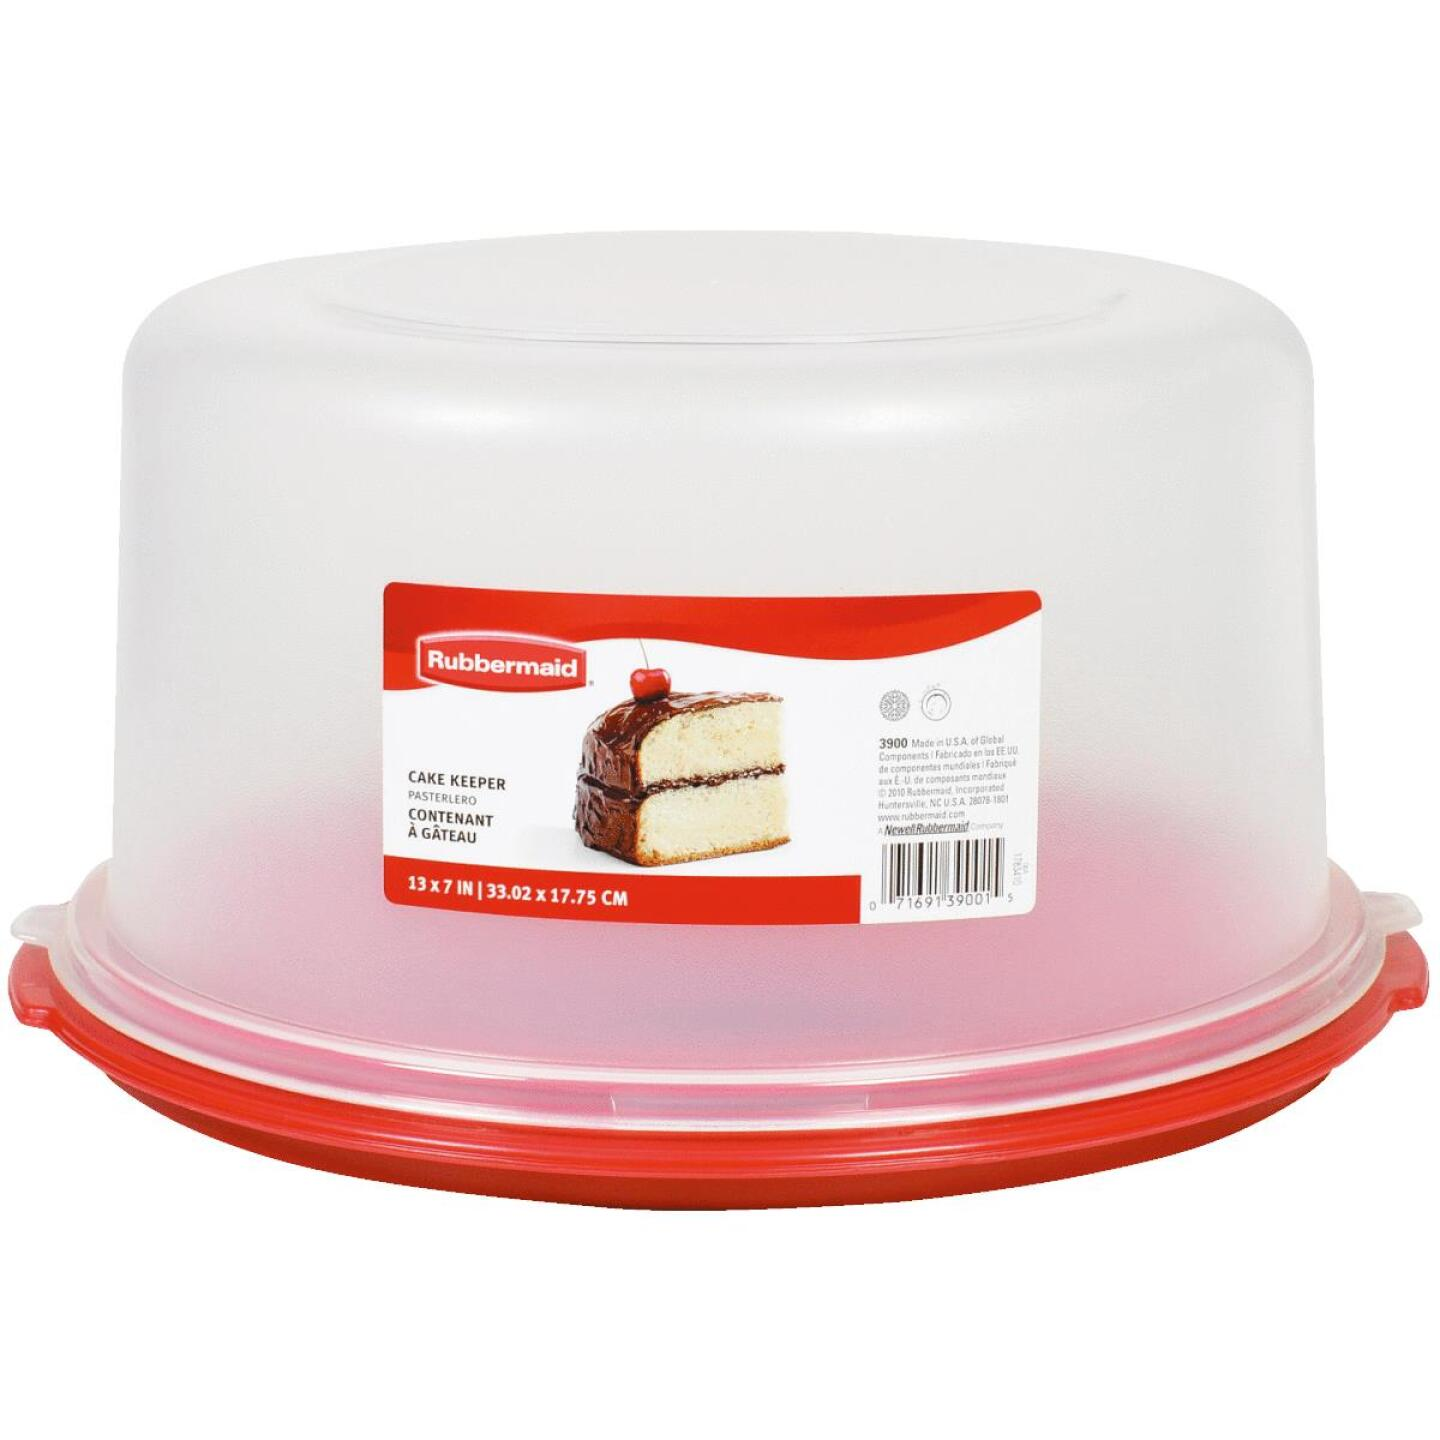 Rubbermaid 13 In. Dia. Durable Cake Keeper Image 1